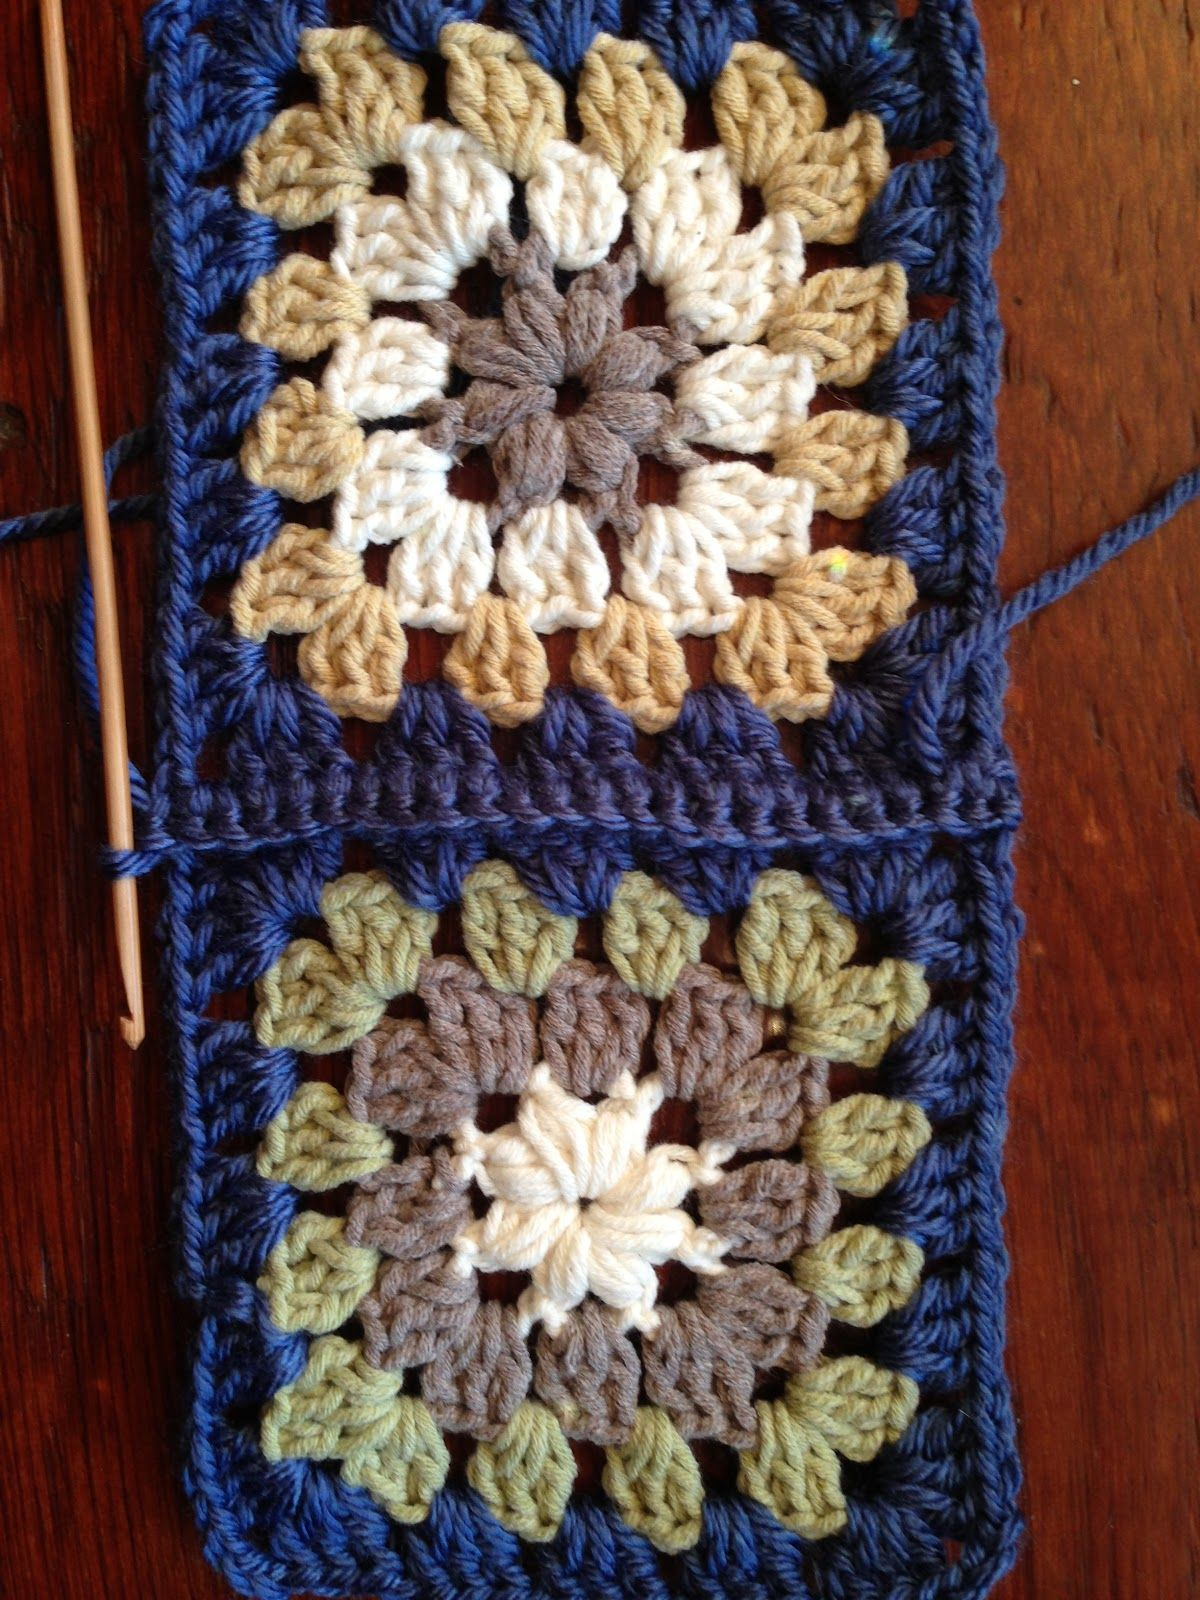 Annoo's Crochet World: January 2013